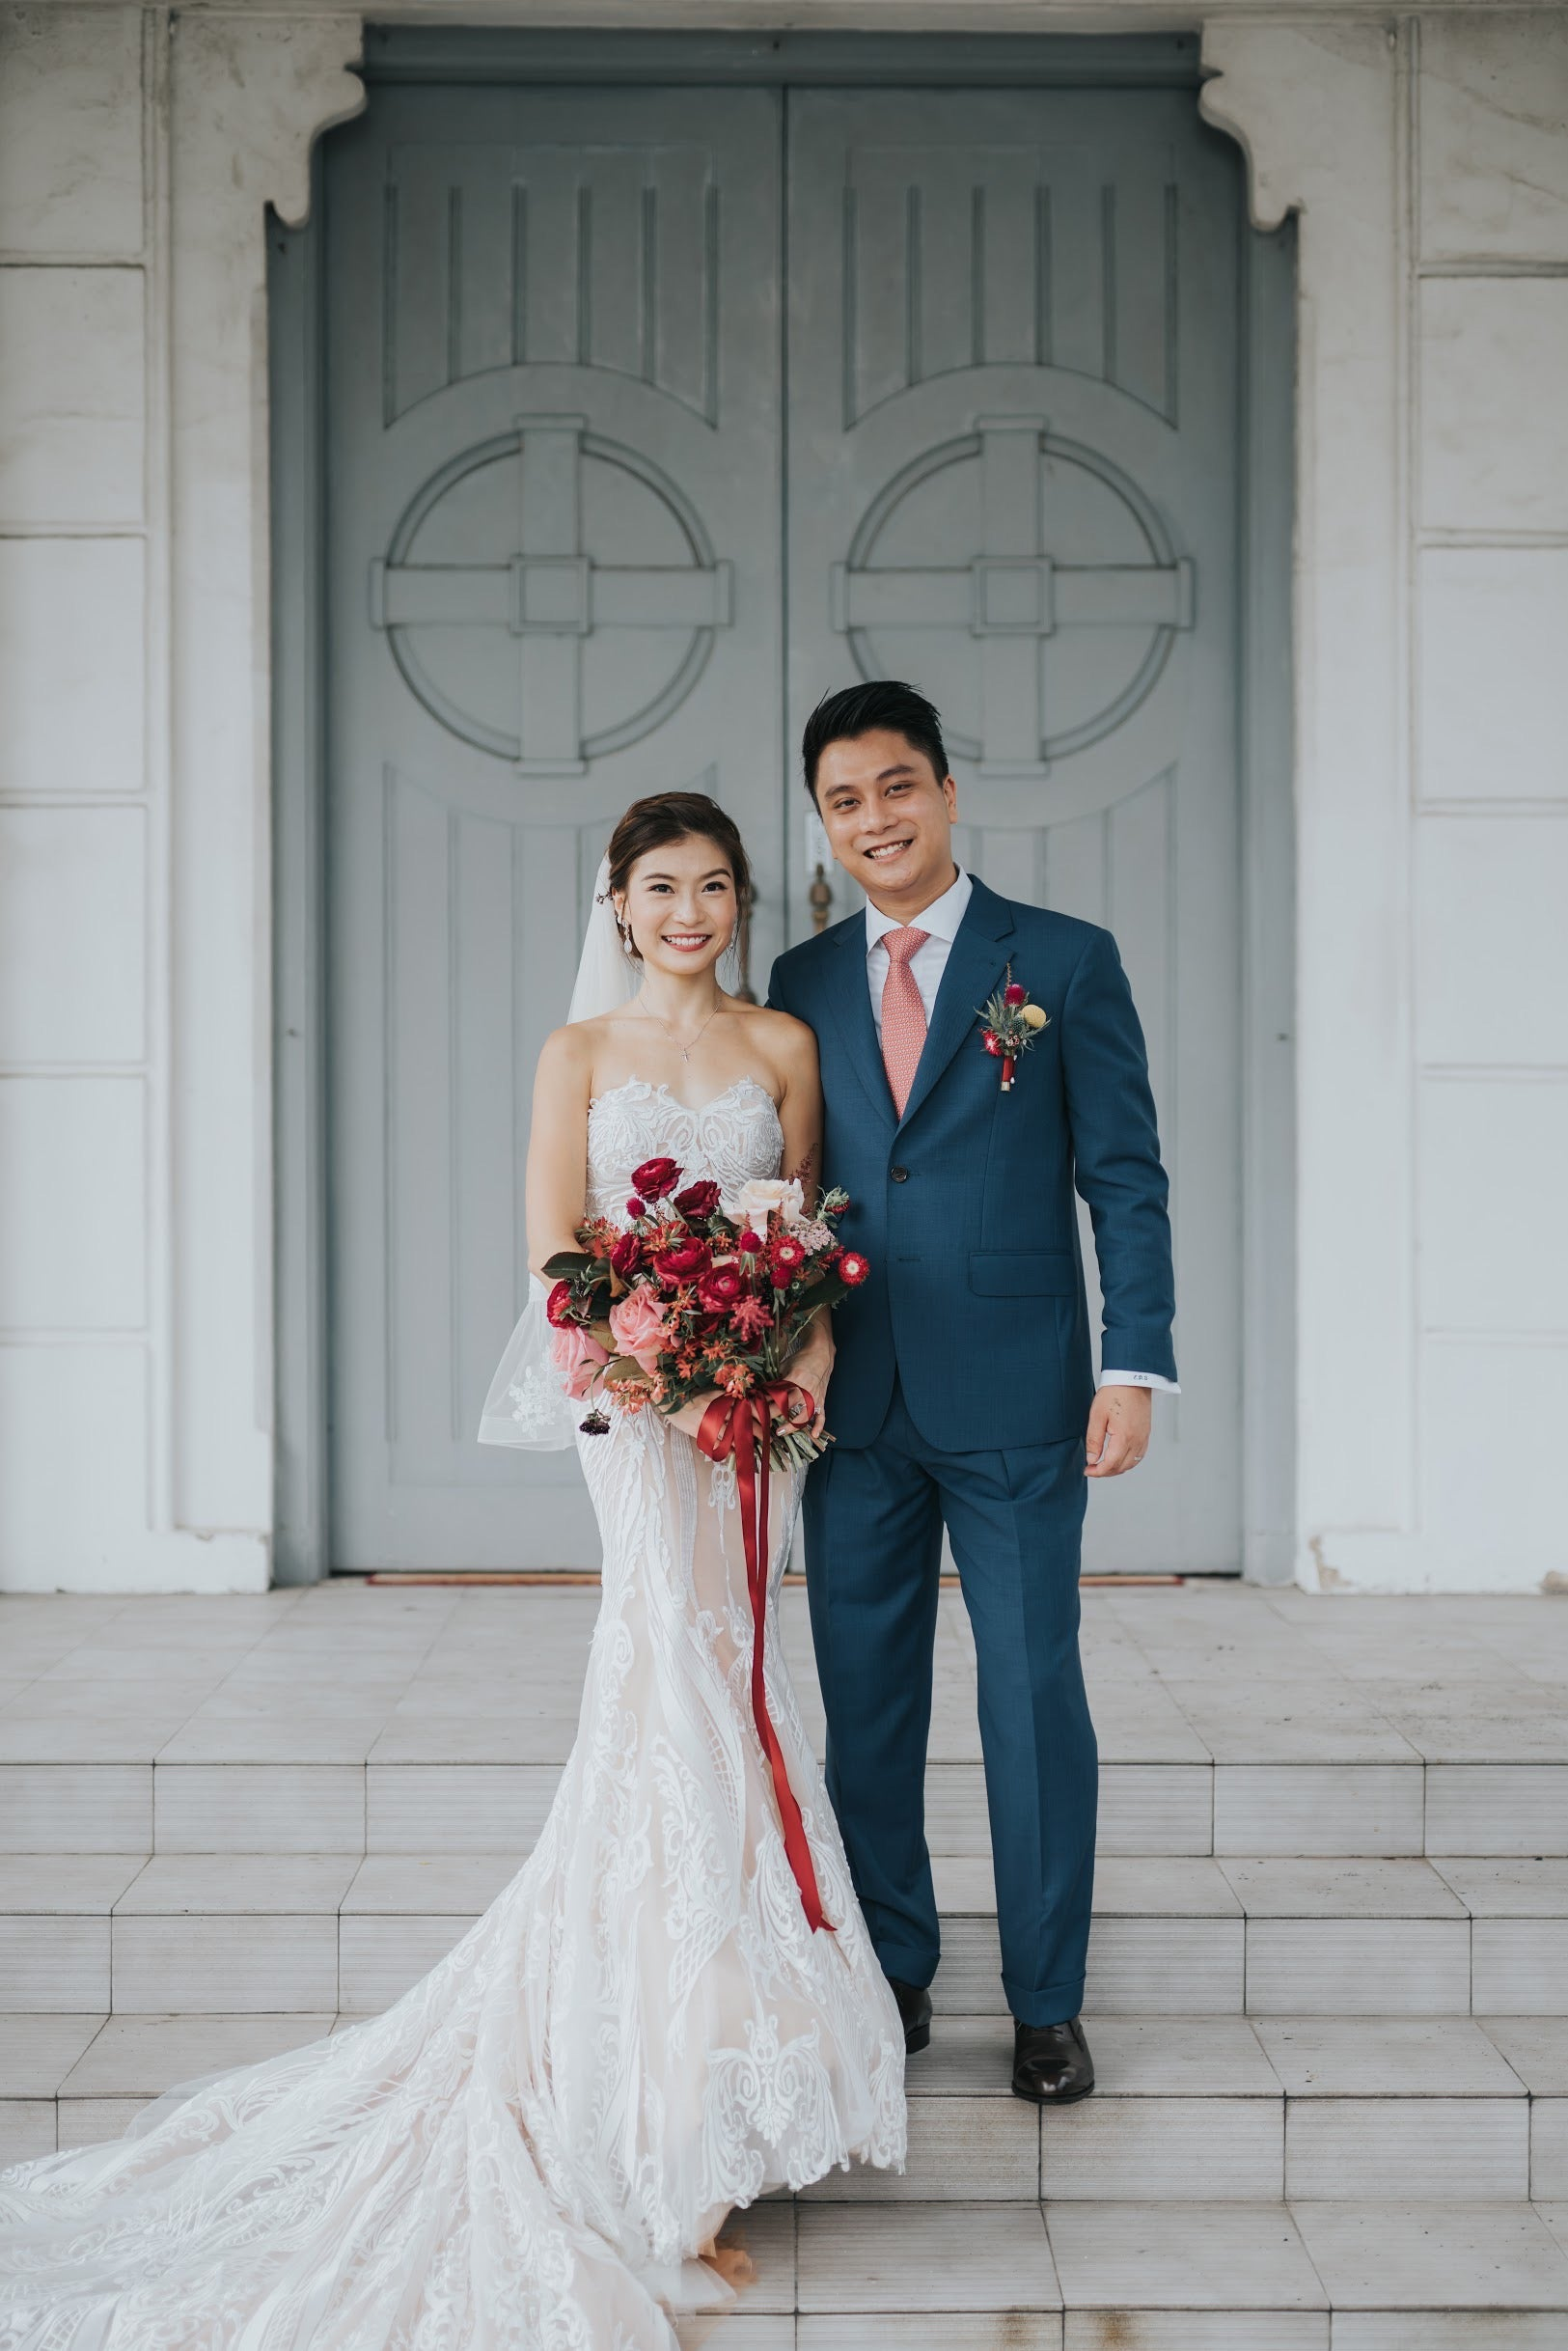 Wedding couple photoshoot on church steps with matching corsage boutonniere and custom bride bouquet Singapore